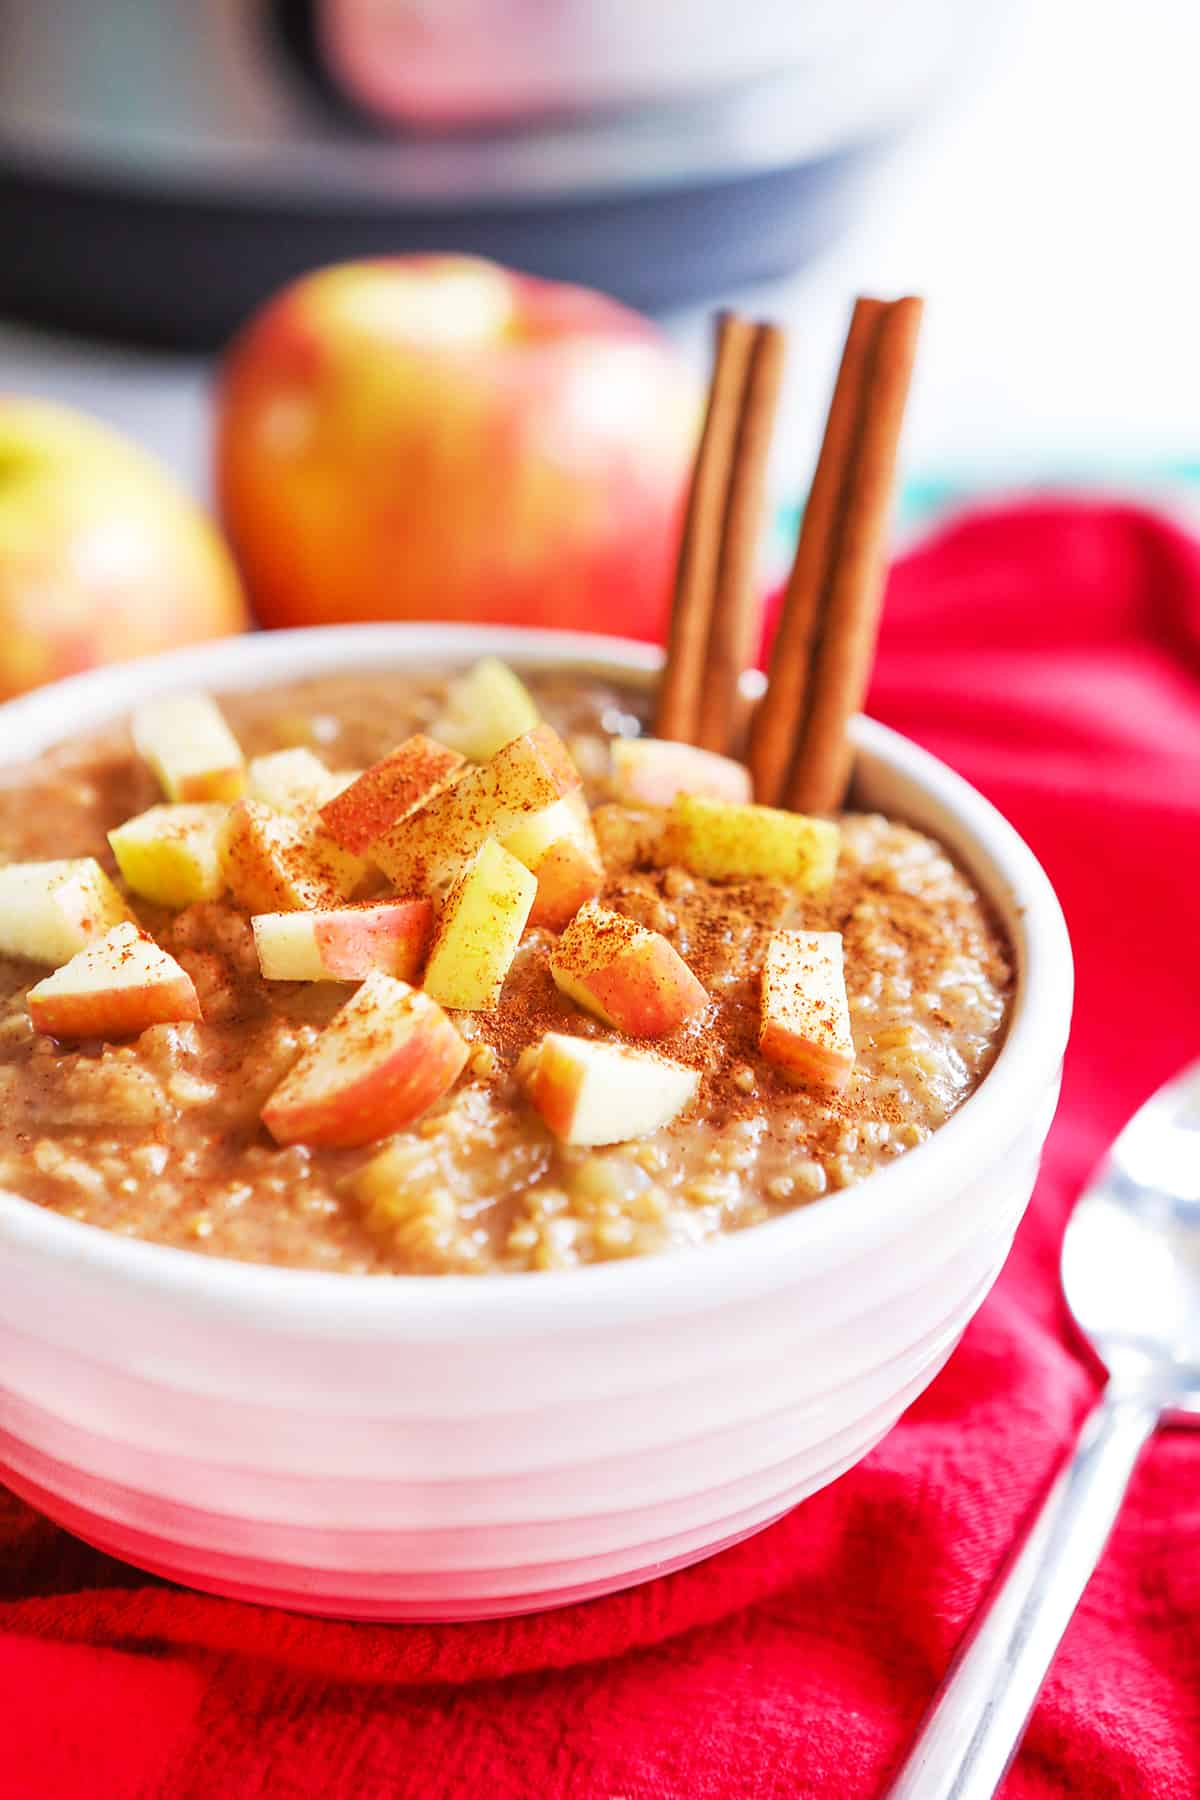 Prepared bowl of instant pot apple oatmeal with two cinnamon sticks sticking out.